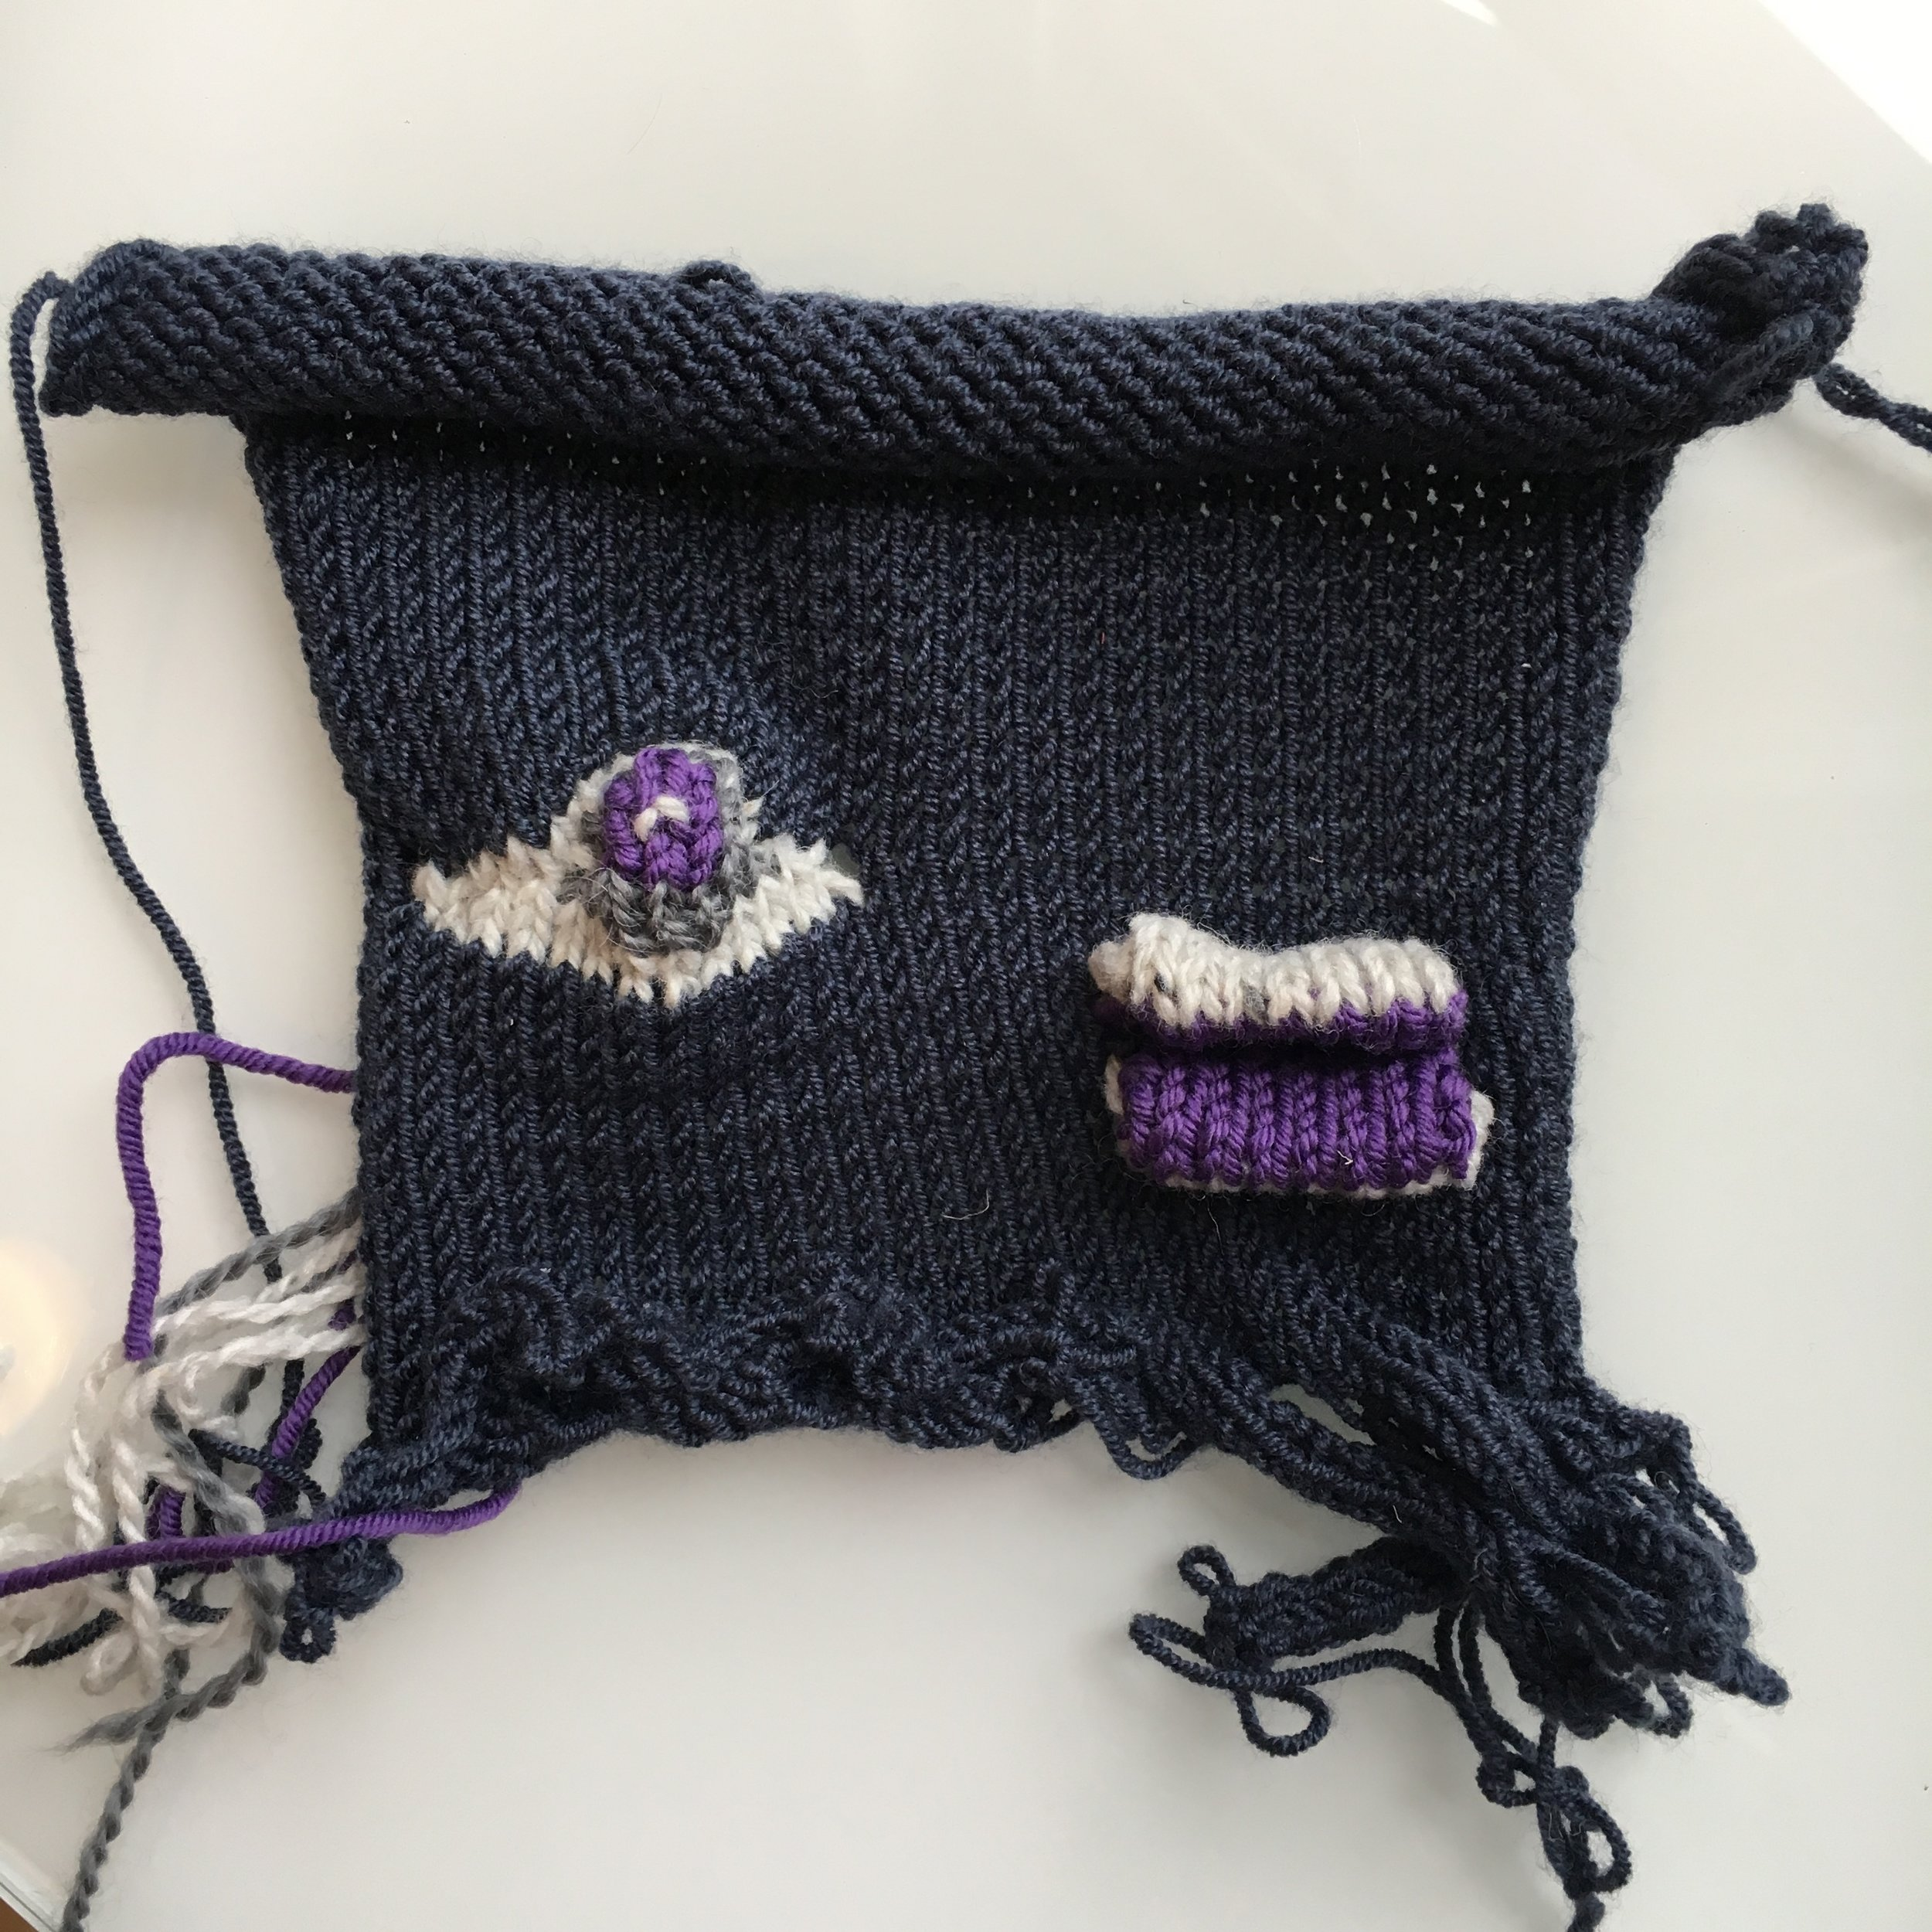 Allison also learned how to make short rows in a knitting machine class at Vogue Knitting Live in NYC.